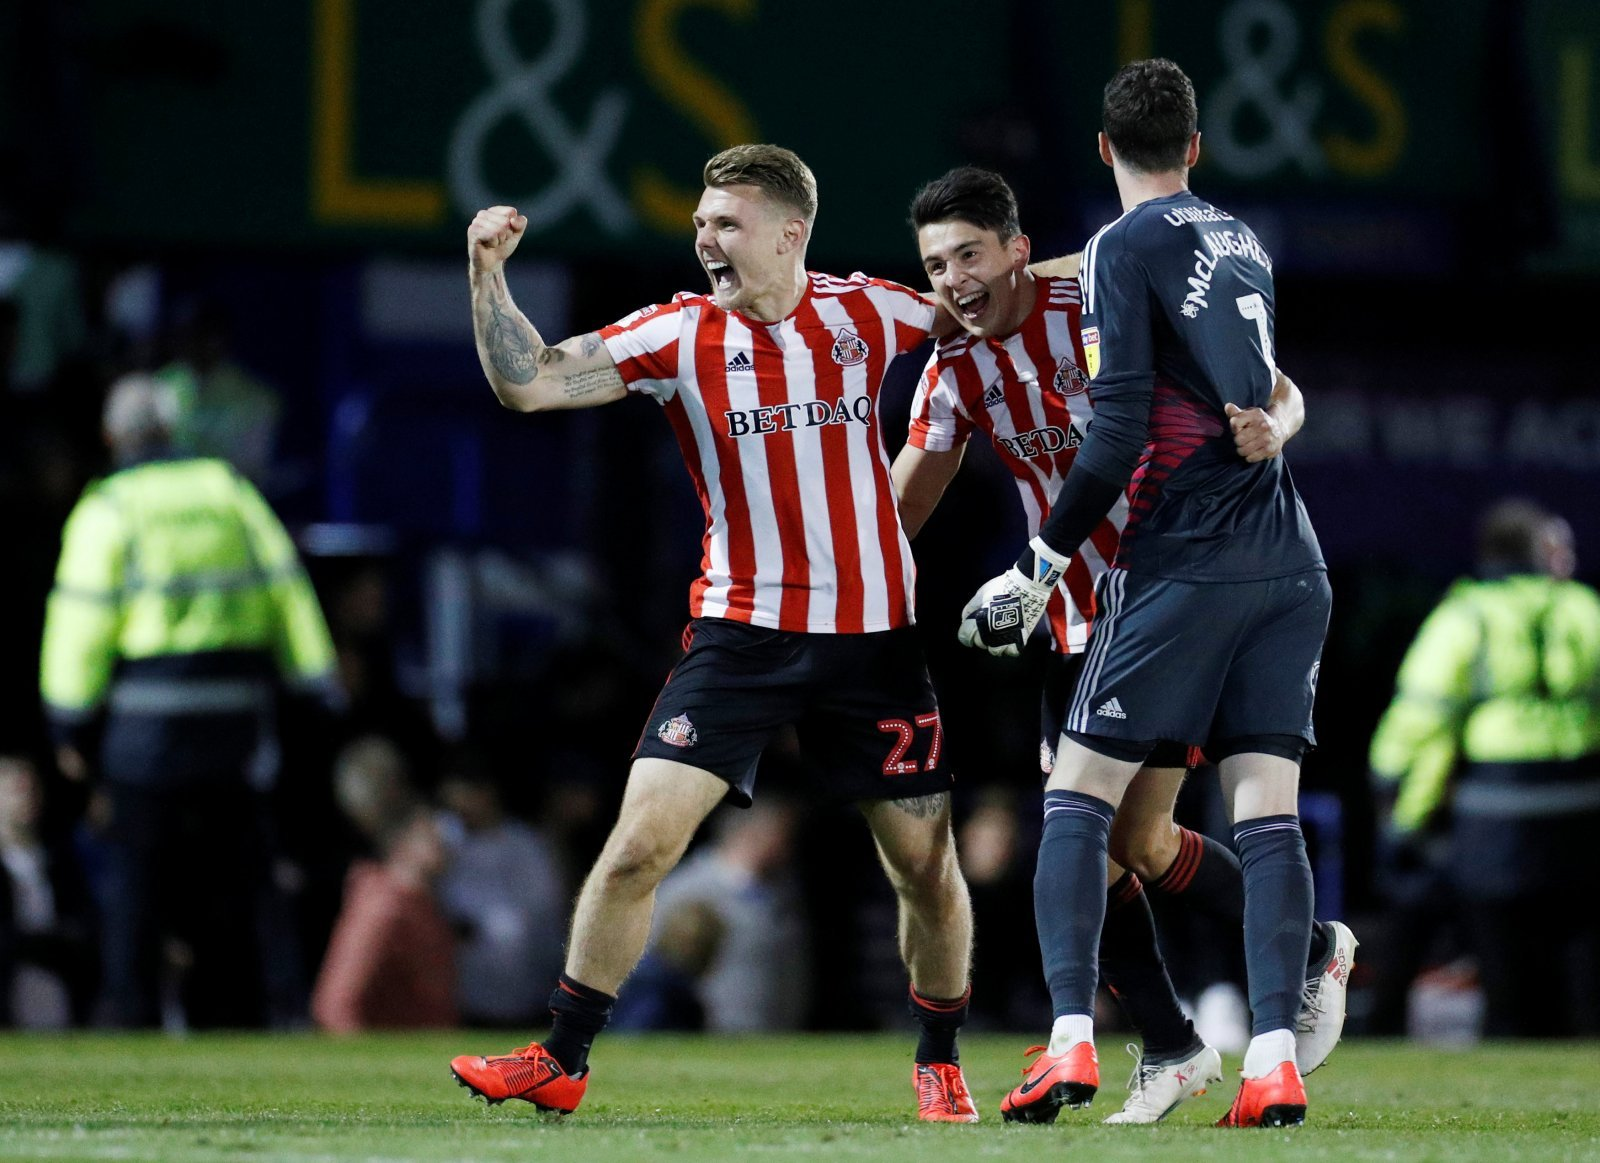 Unsung Hero: Luke O'Nien puts in typically hearty performance for Sunderland